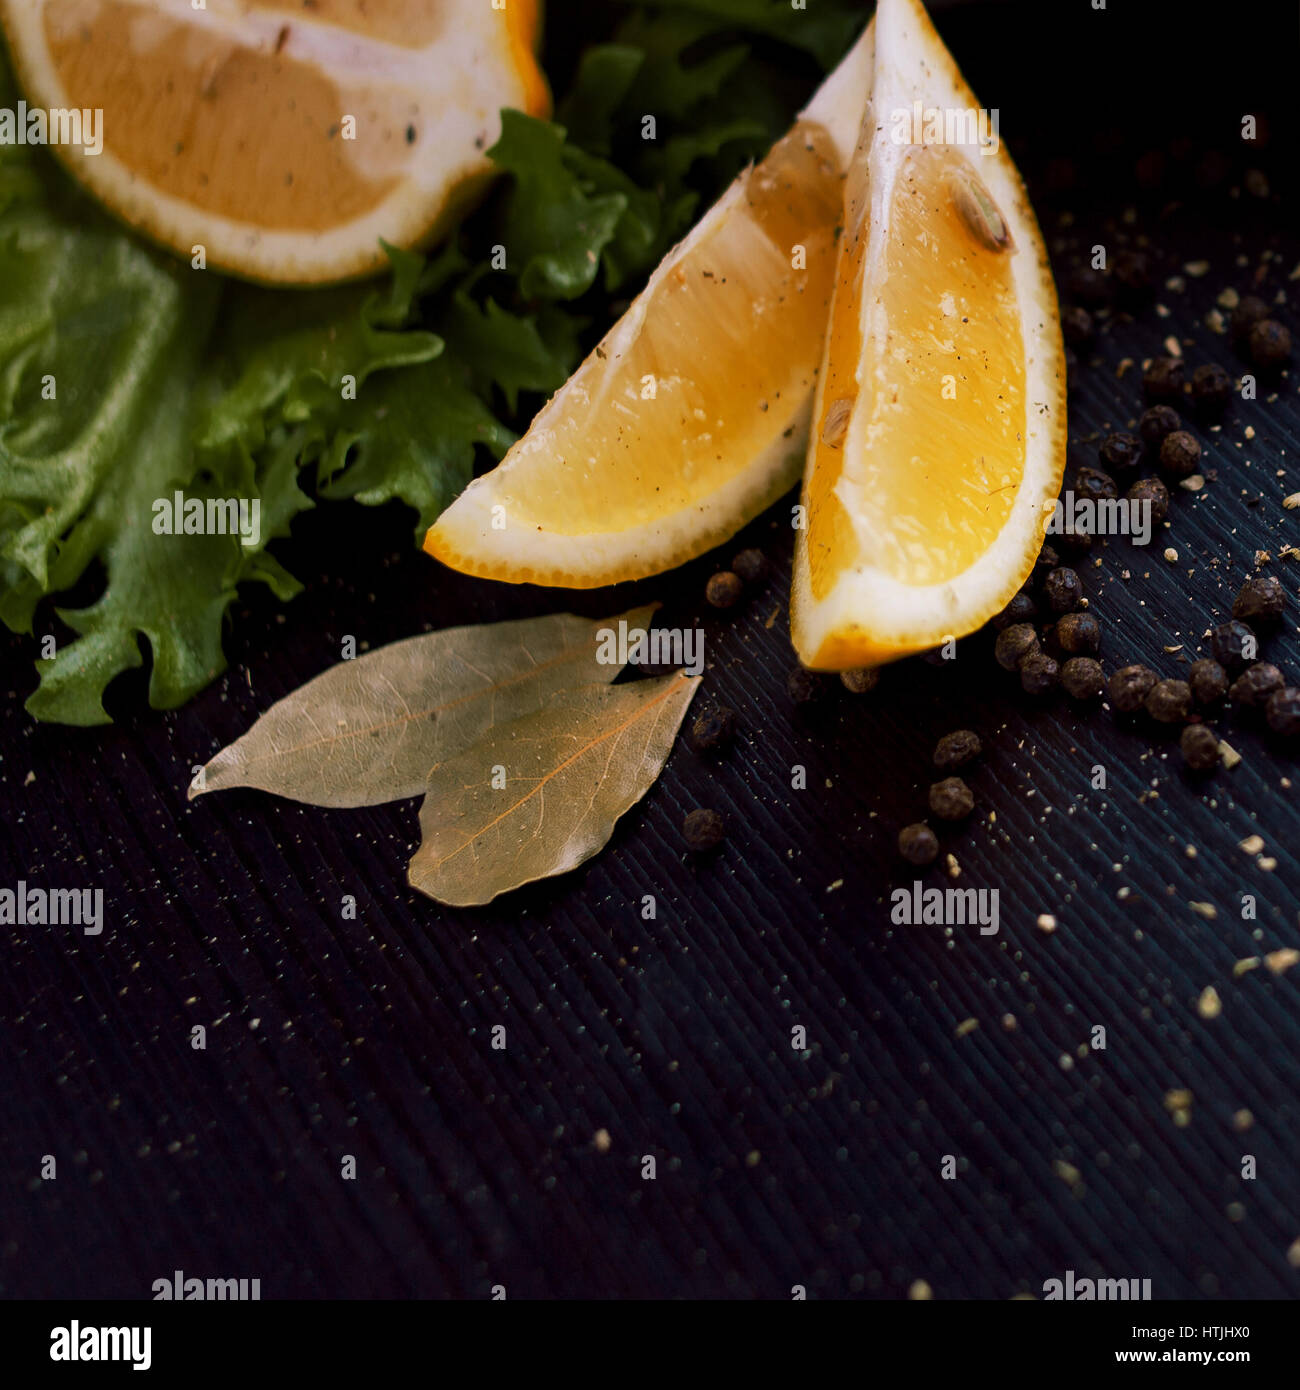 Black food background with slices of lemon, fresh aromatic herbs and spices, copy space, top view - Stock Image